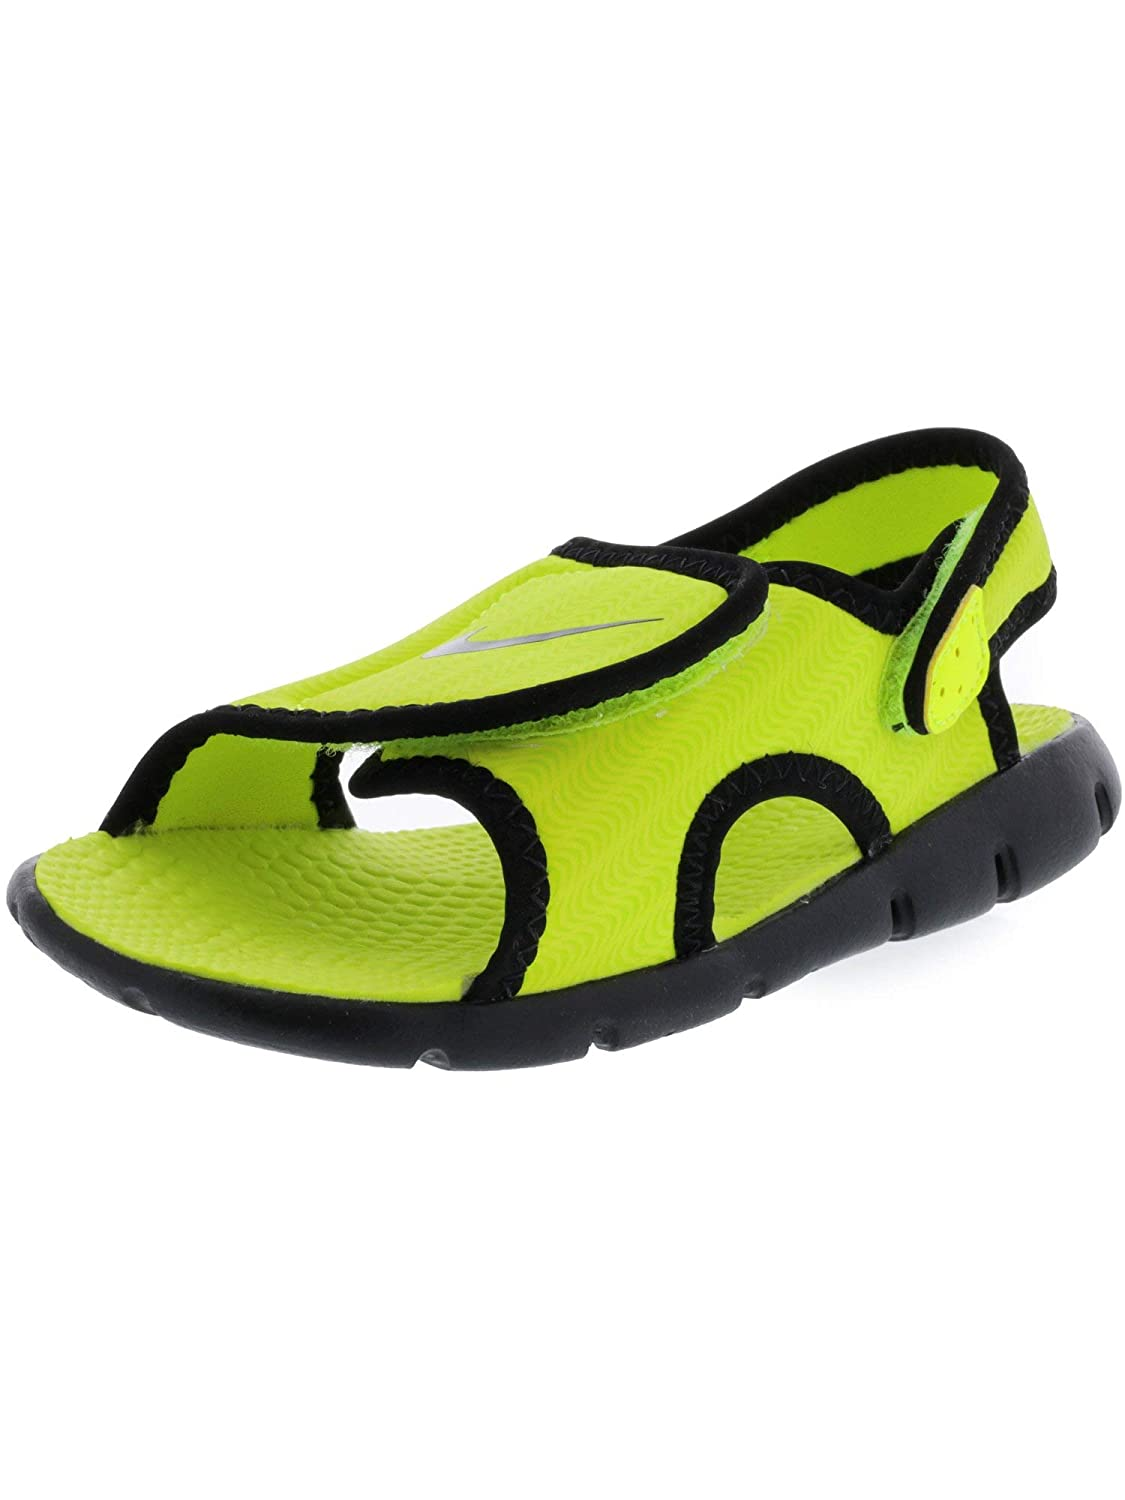 b401c52ee8e4 Amazon.com  Nike Sunray Adjust 4 Volt Black Sandal - 3M  Nike  Sports    Outdoors